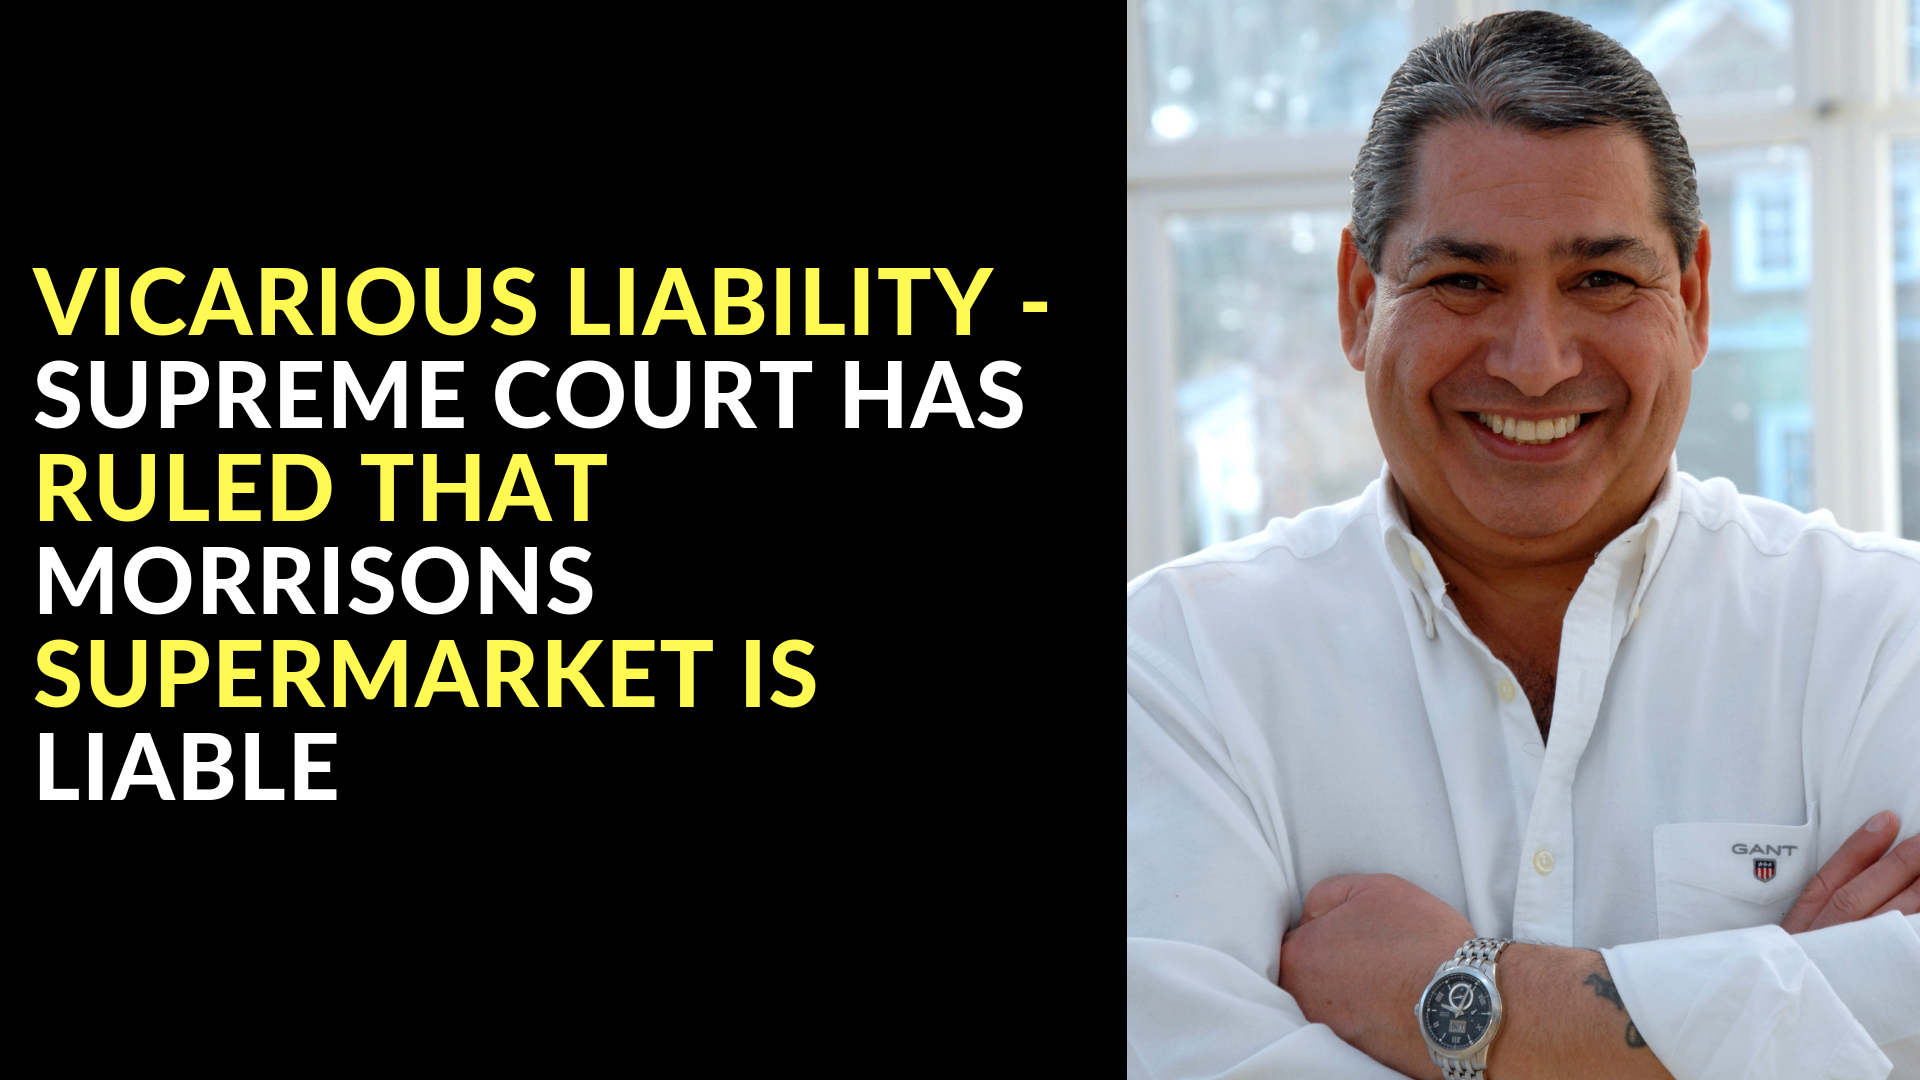 Vicarious Liability - Supreme Court has ruled that Morrisons Supermarket is Liable